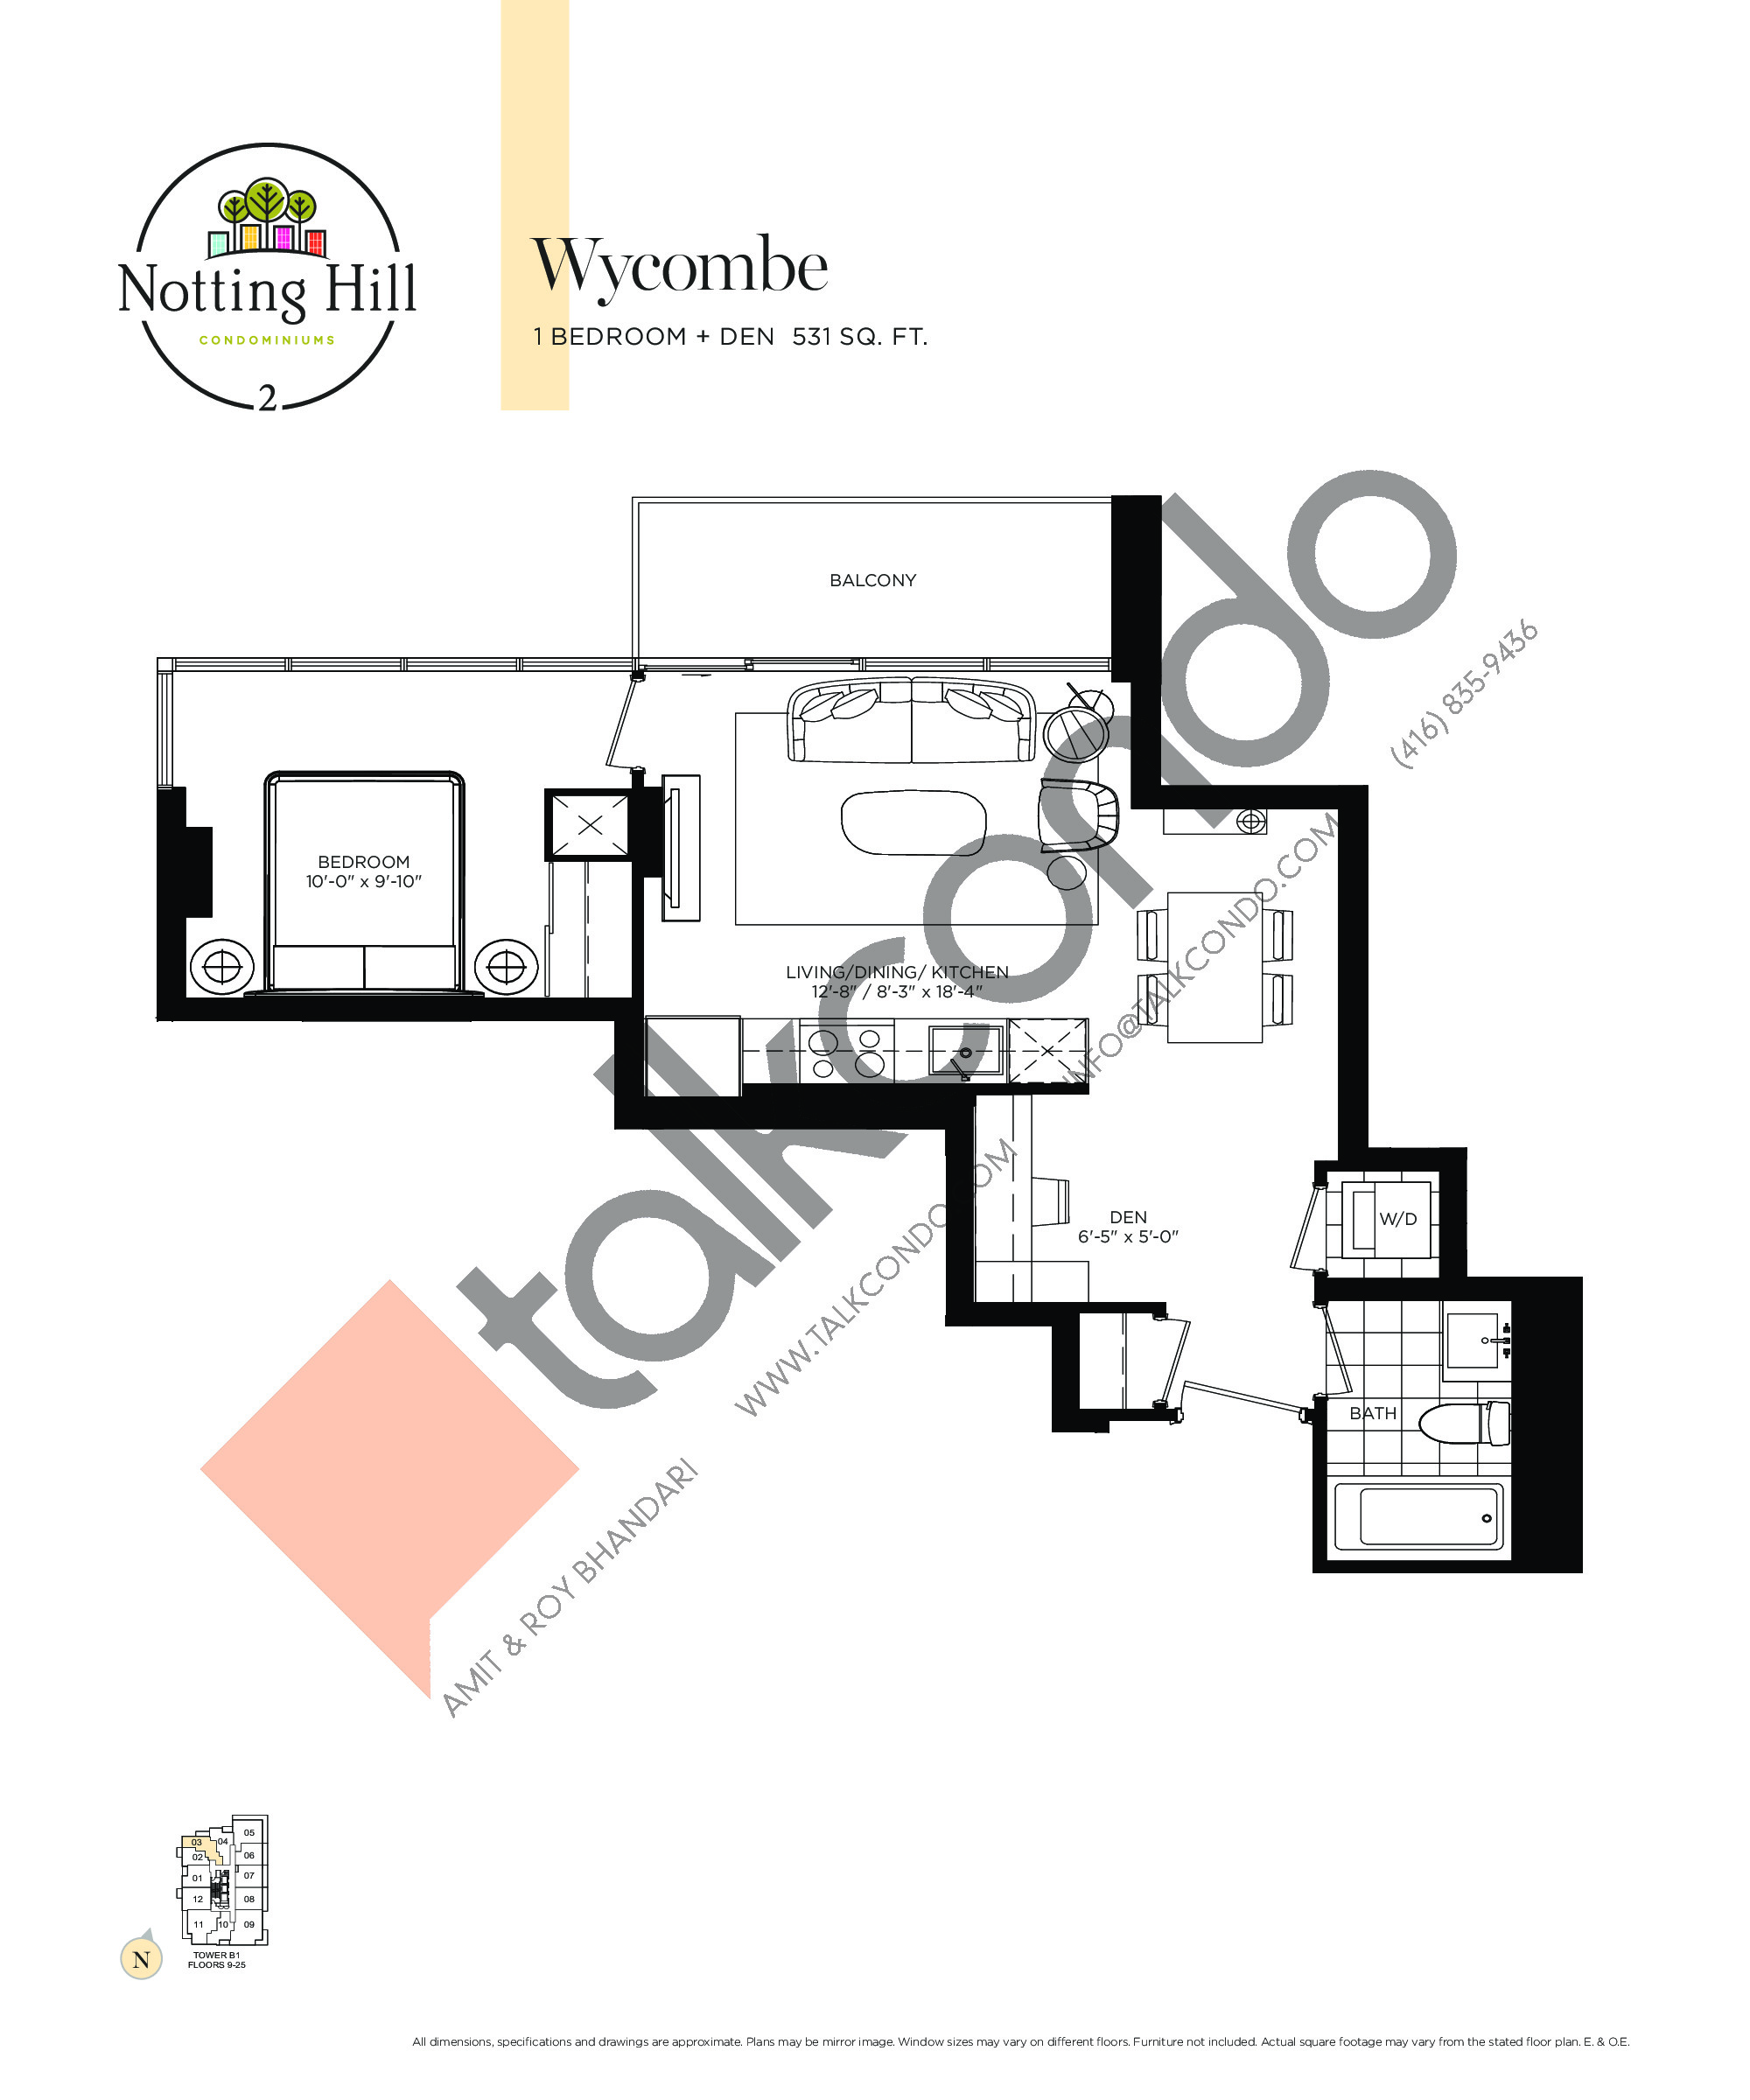 Wycombe Floor Plan at Notting Hill Phase 3 Condos - 531 sq.ft